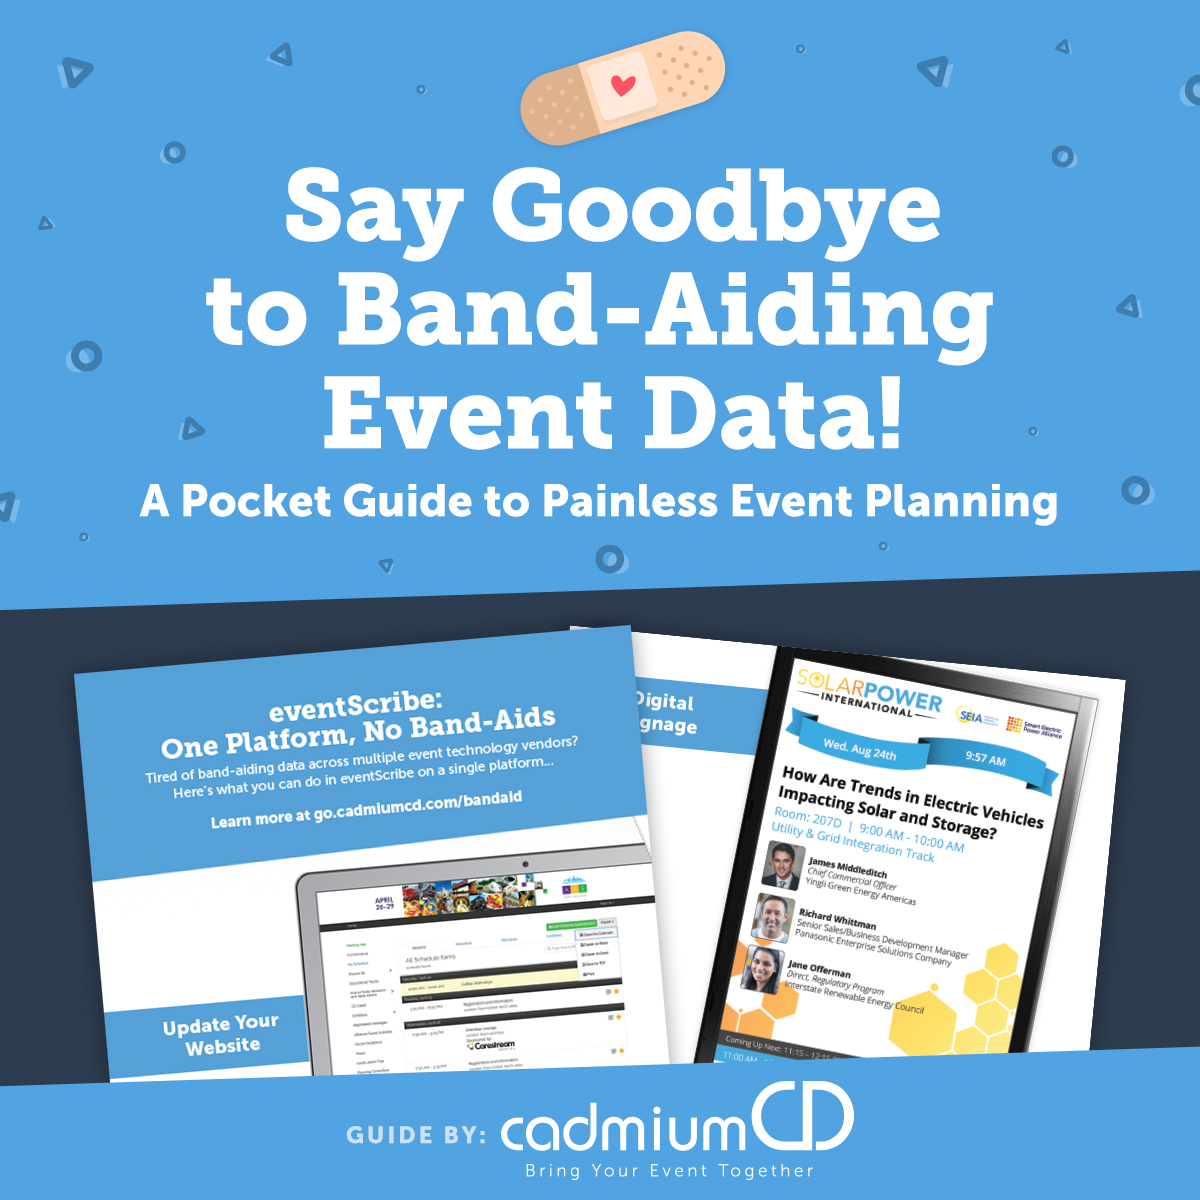 A Pocket Guide to Painless Event Planning